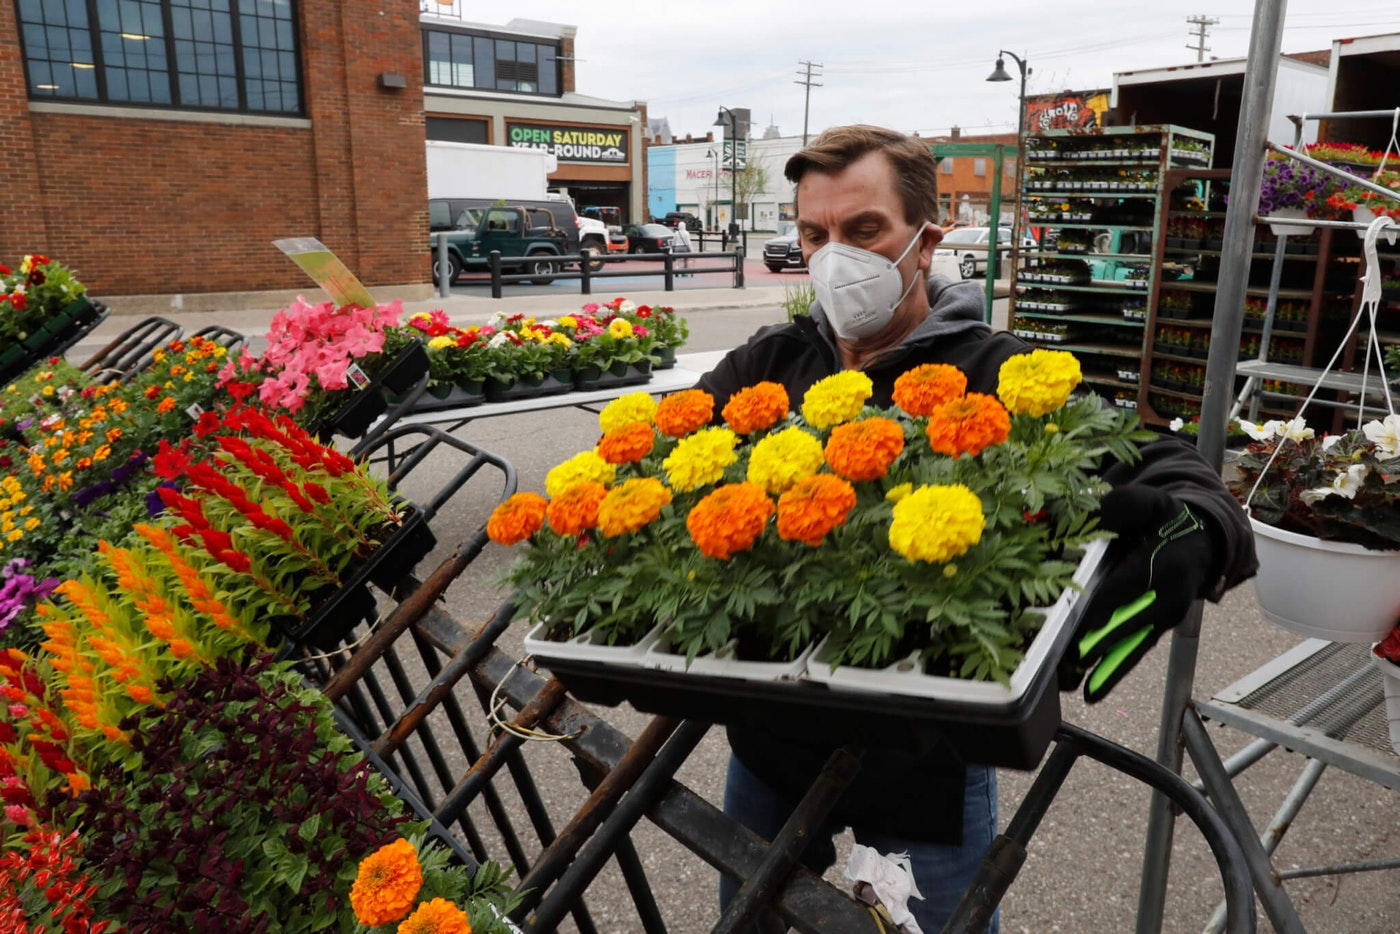 John Spens of Geier Farms sets up at the Detroit Farmers Market, Saturday, May 2, 2020, in Detroit. Farmers, growers and operators of open-air markets are heading into one of their busiest times of year while facing the added challenge of the coronavirus. Shoppers venturing to farmers markets this spring are likely to see a lot fewer vendors and fellow customers. The ones they do see will be taking precautions such as the wearing of face masks and frequent use of hand sanitizer. (AP Photo/Carlos Osorio)